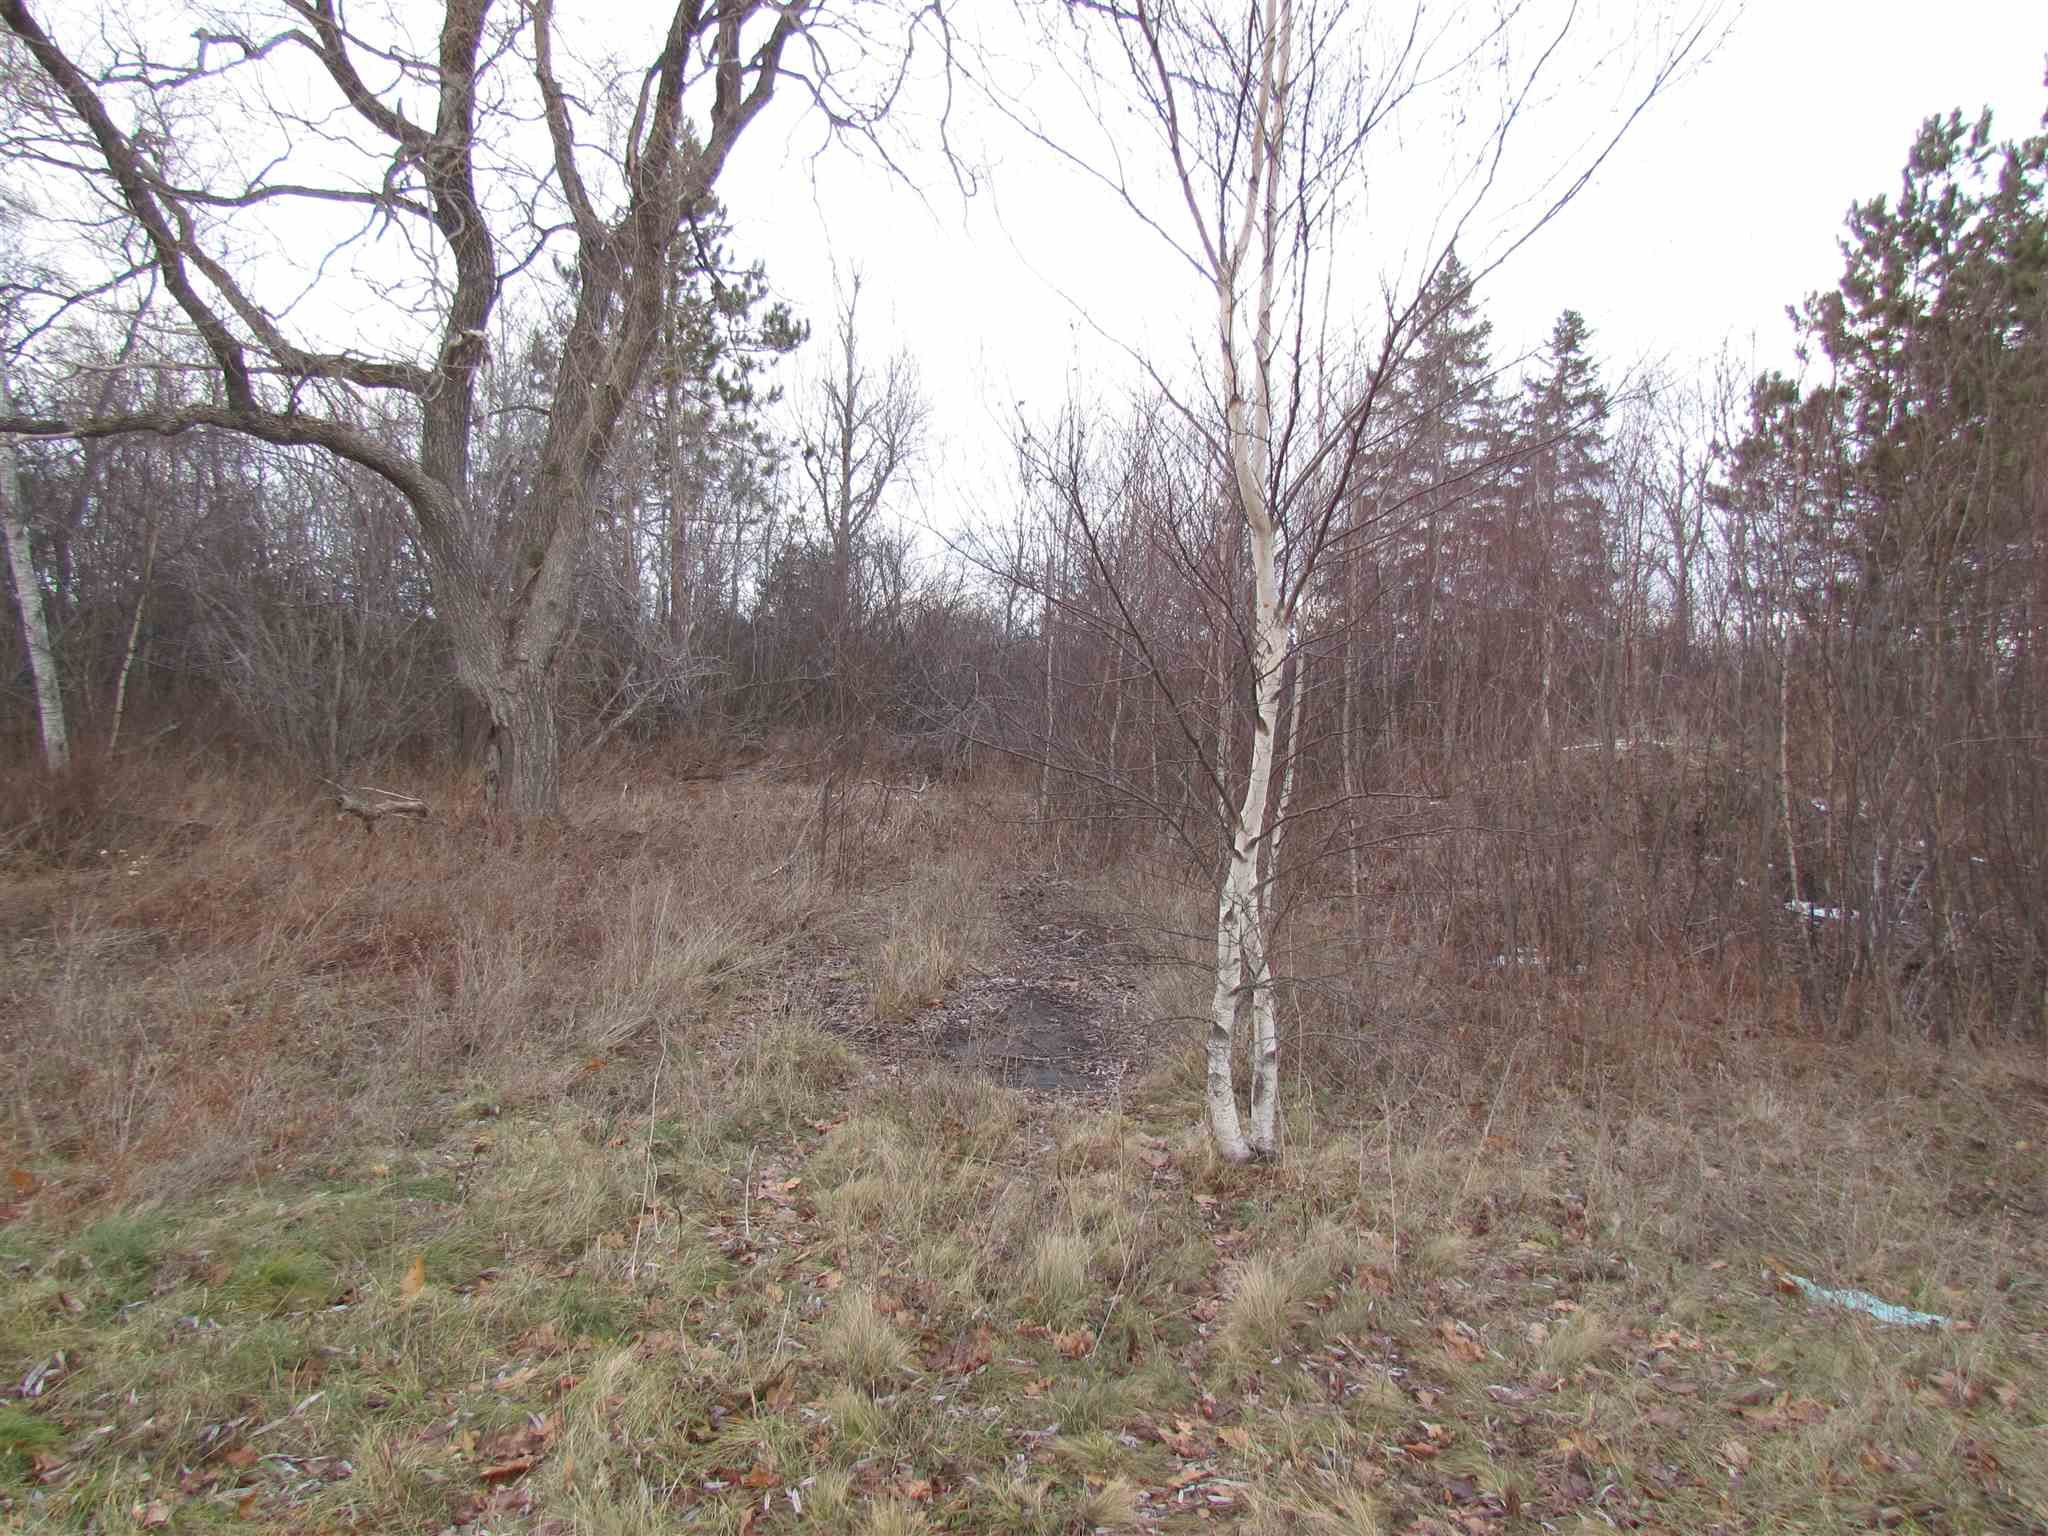 Main Photo: 2127 Highway 236 in Mosherville: 403-Hants County Vacant Land for sale (Annapolis Valley)  : MLS®# 202100967